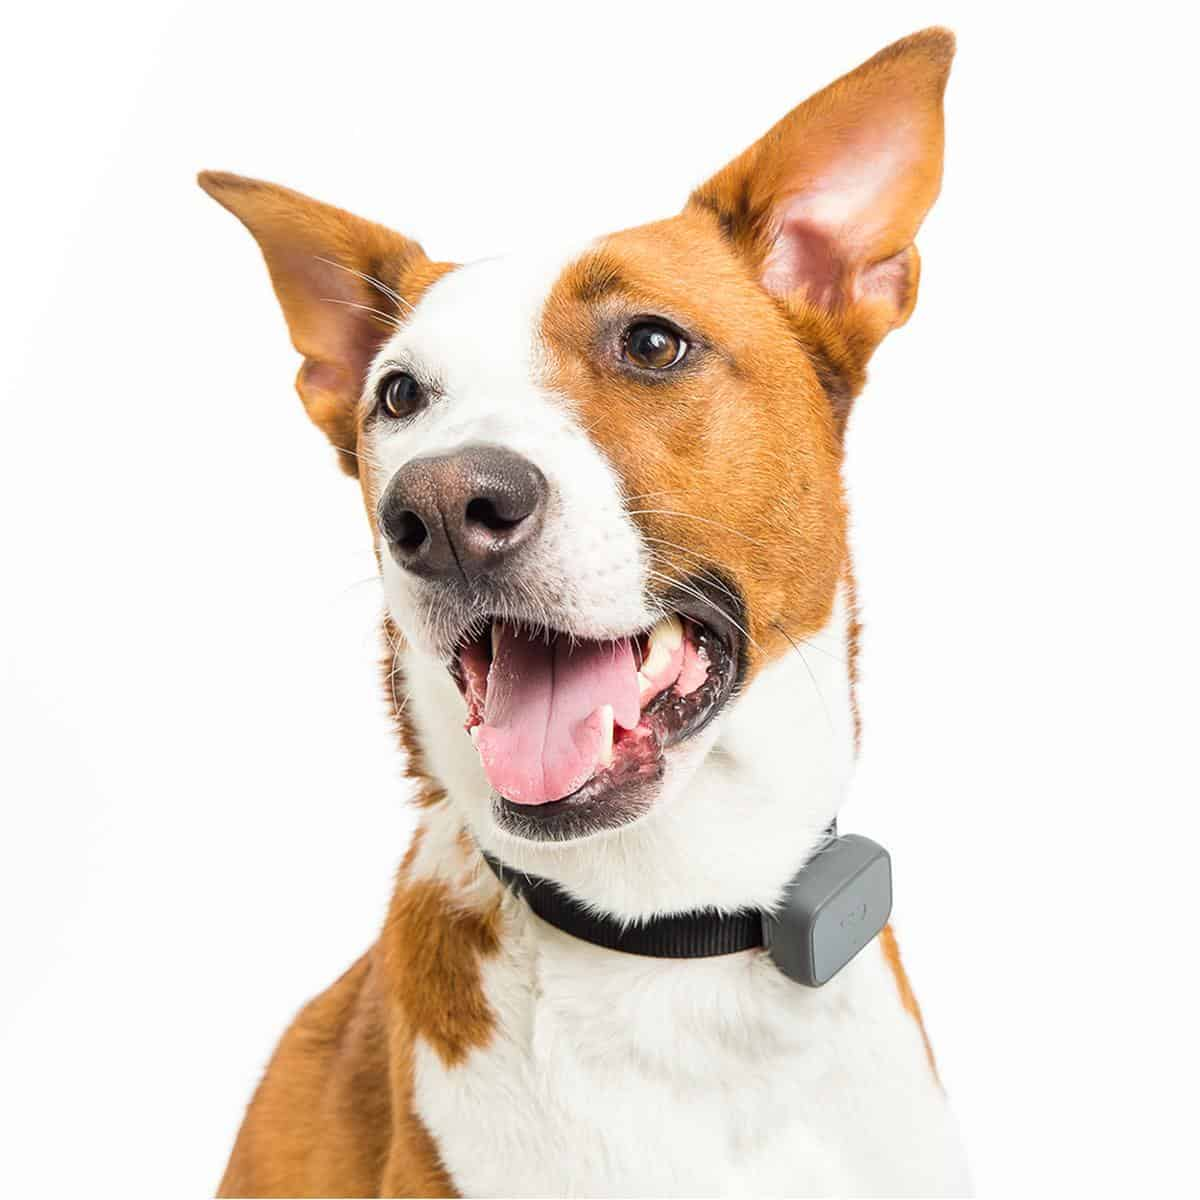 Whistle 3 GPS Pet Tracker & Activity Monitor | Must-Have Pet Tech For Your Cats and Dogs